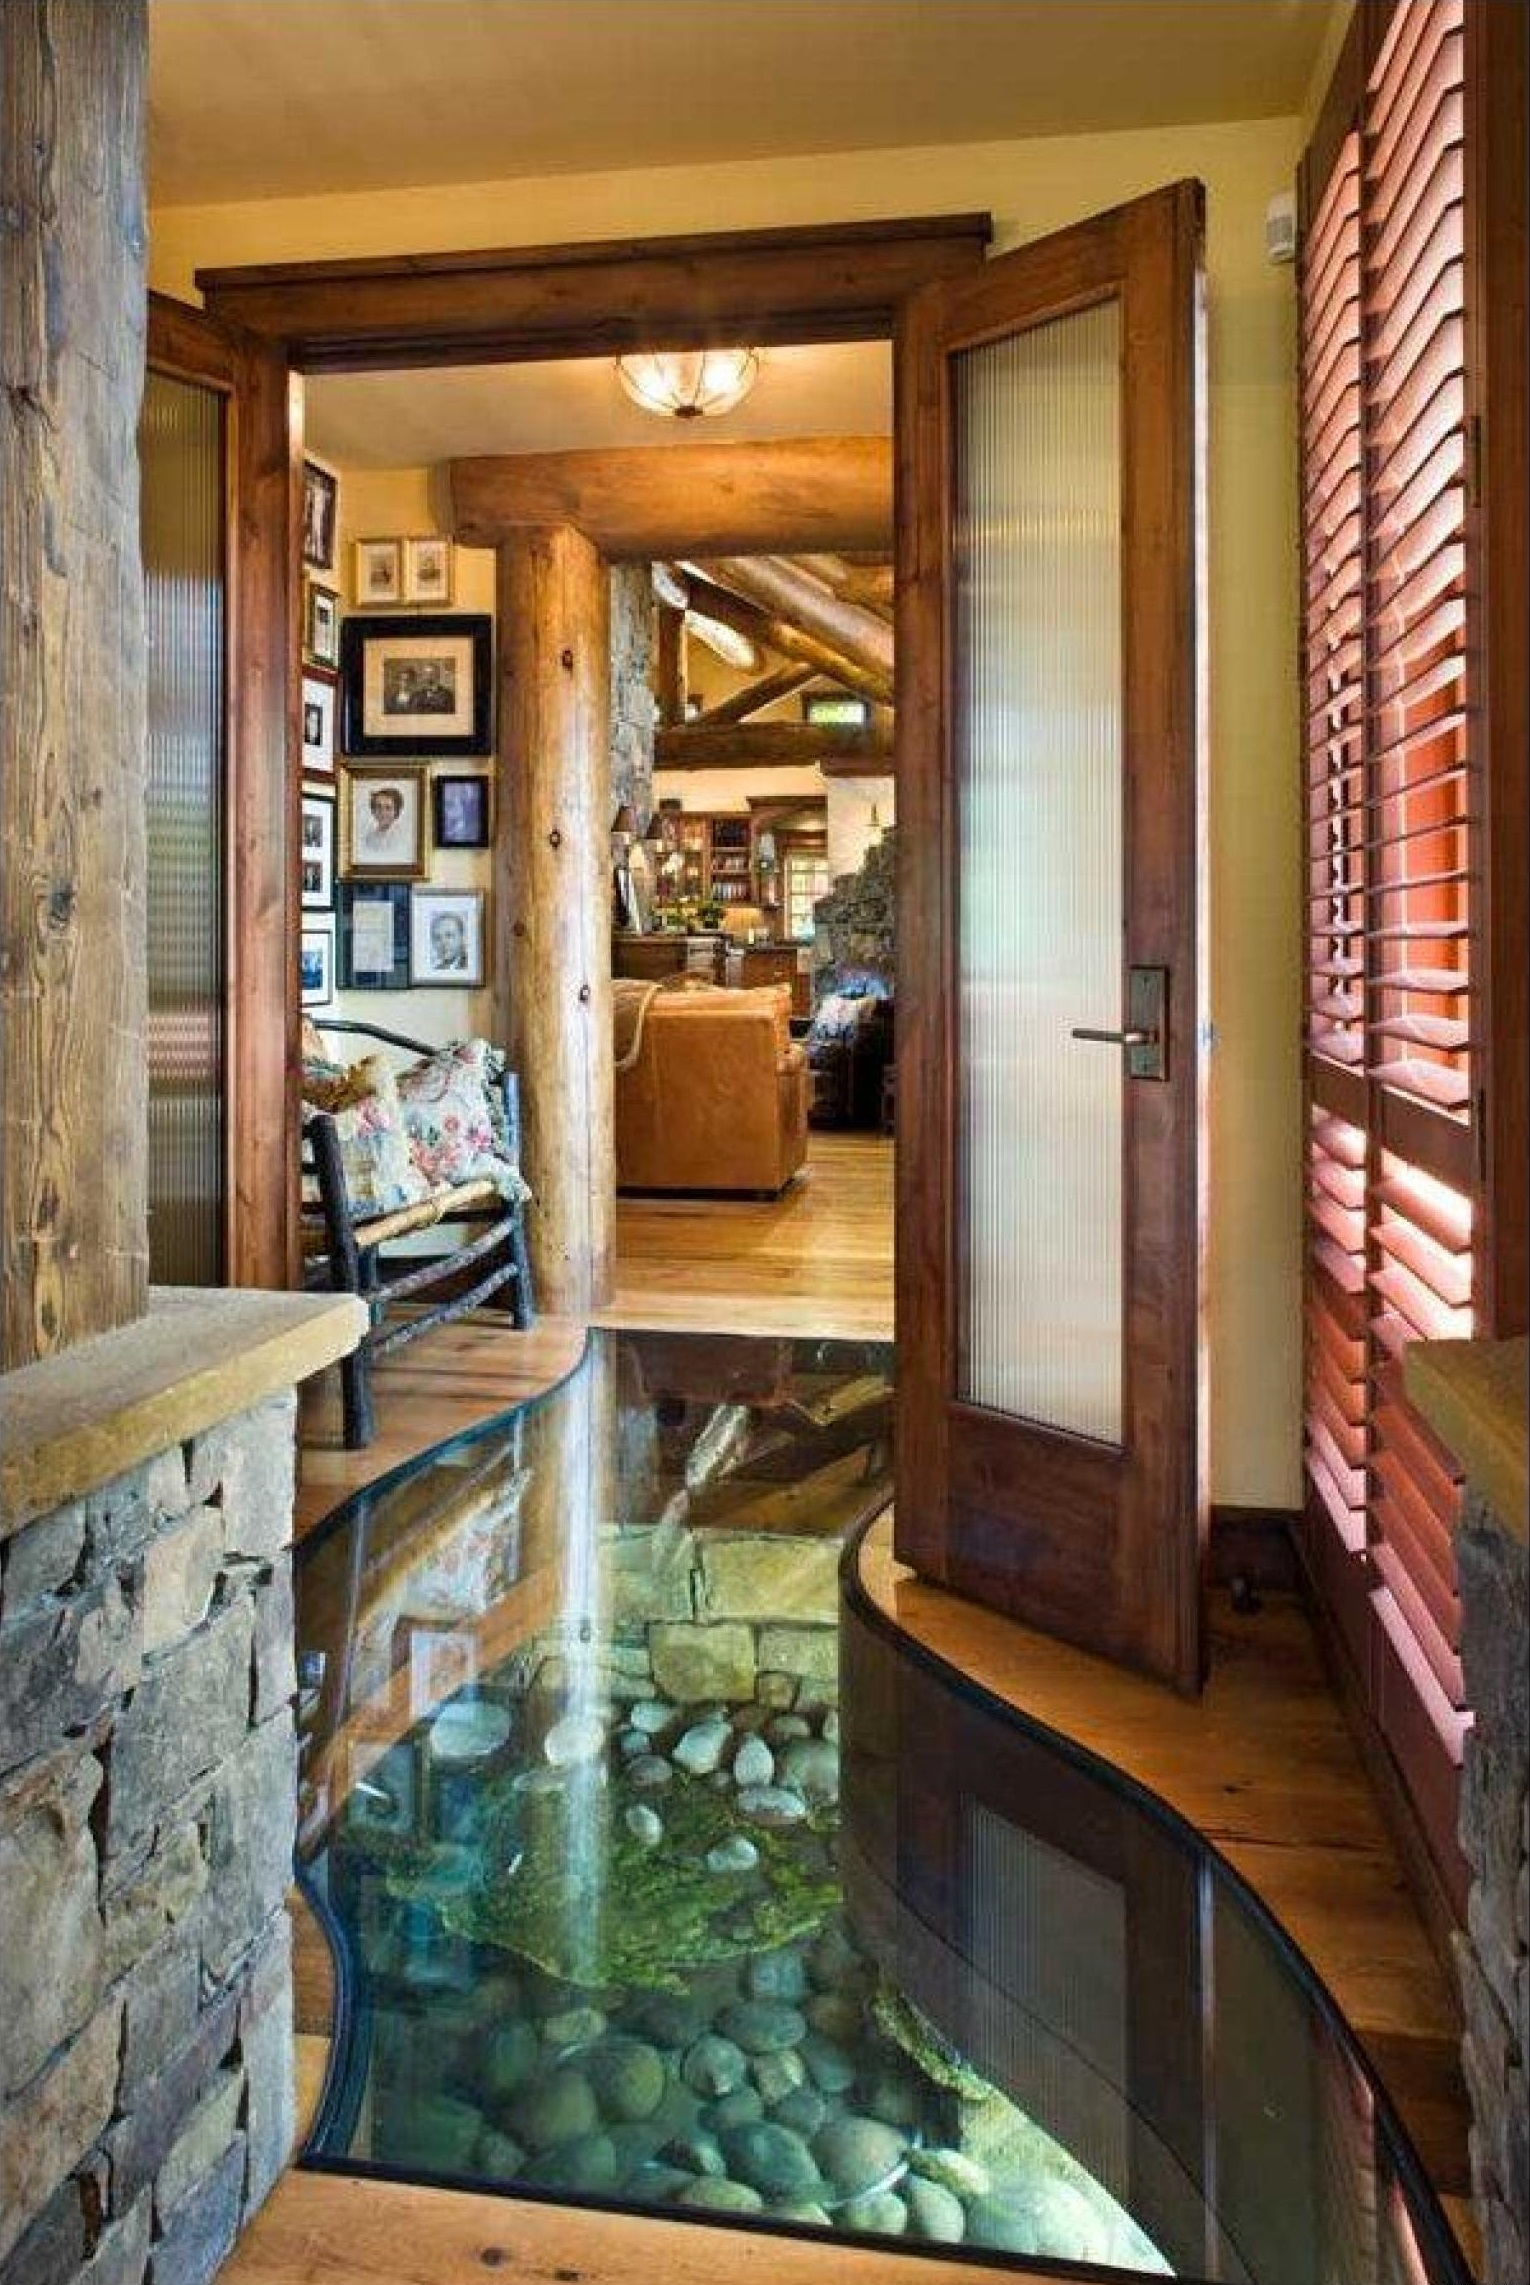 #9 Glass Floor Creek   Features Every Million Dollar House Has To Have   Image Source: gosocial.co